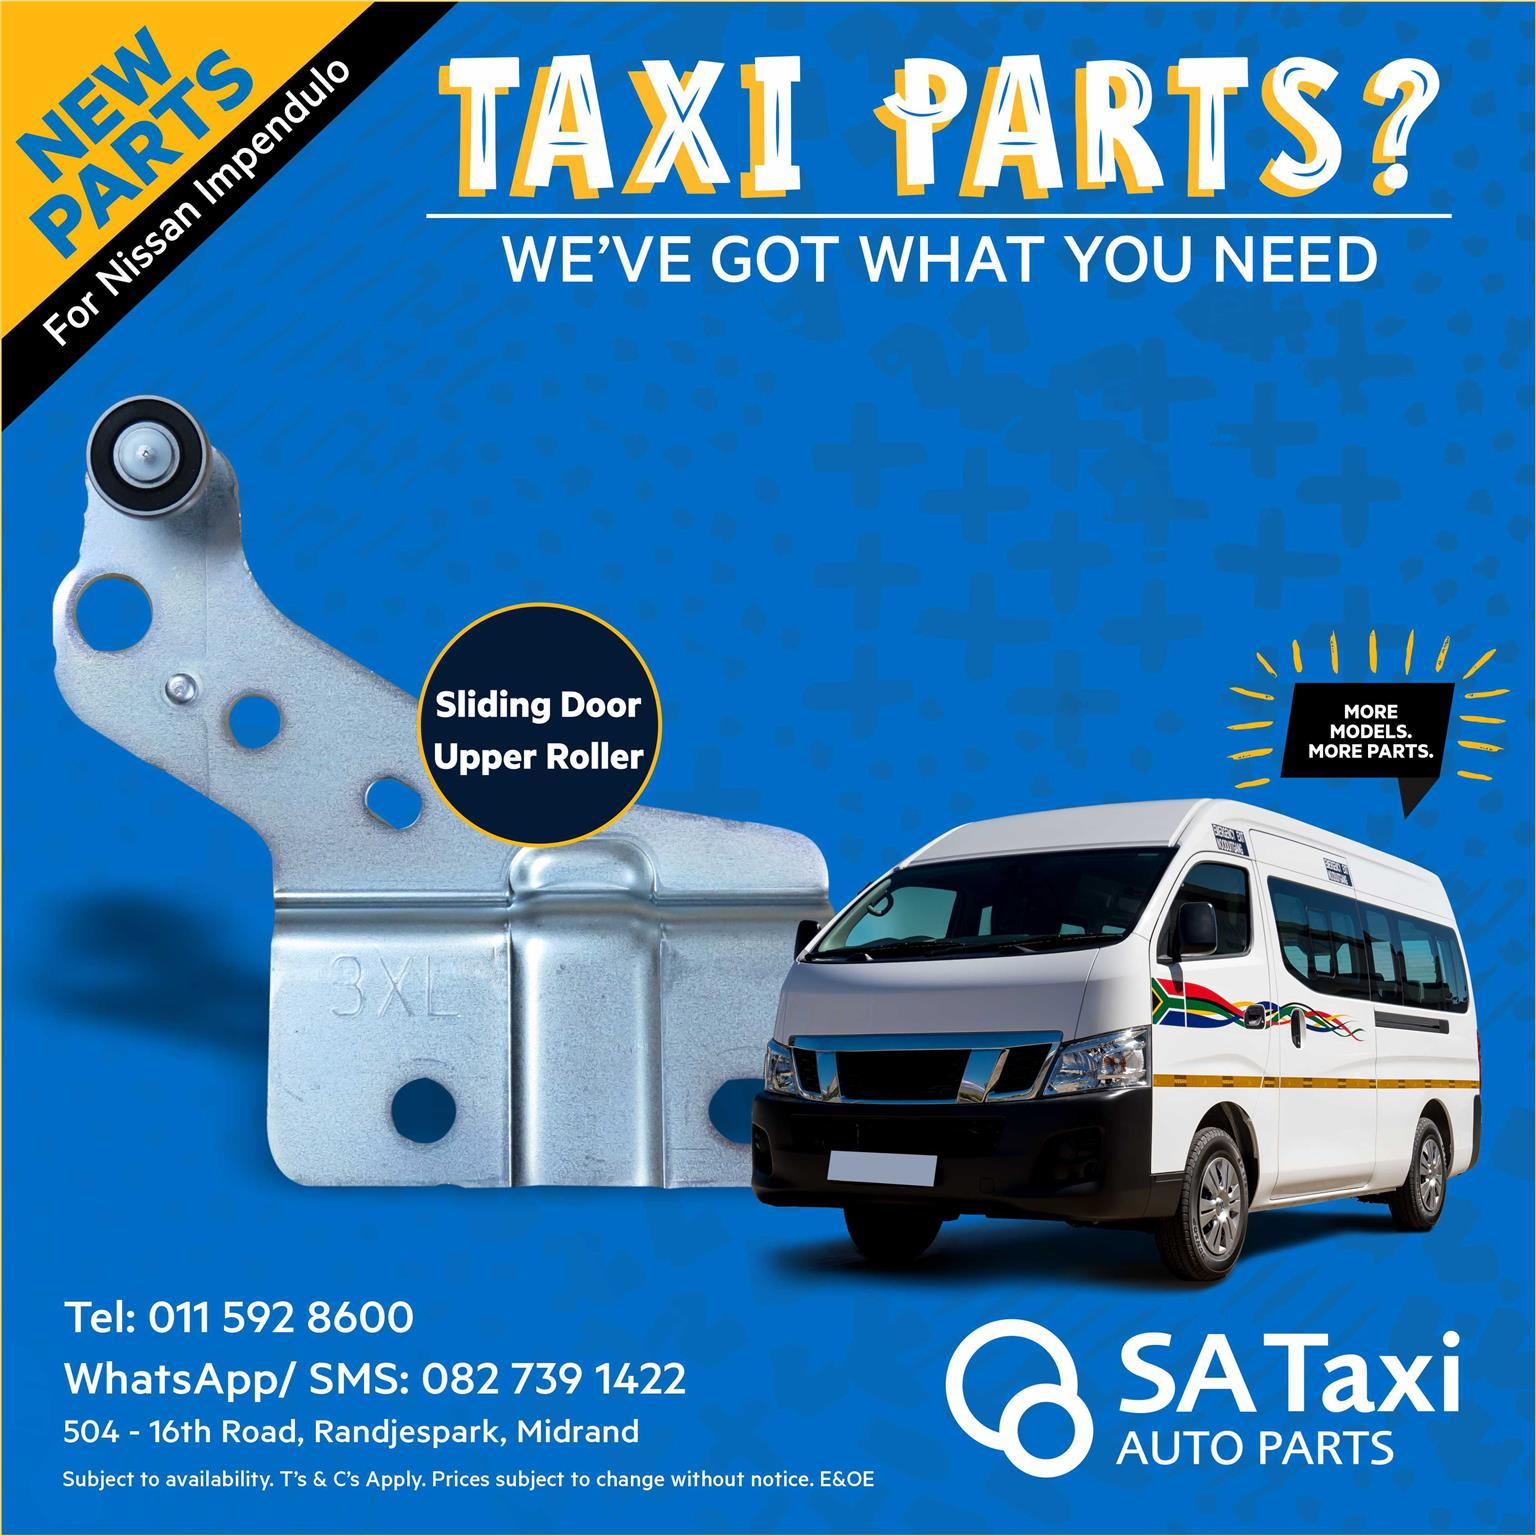 New Sliding Door Upper Roller for Nissan Impendulo - SA Taxi Auto Parts quality spares